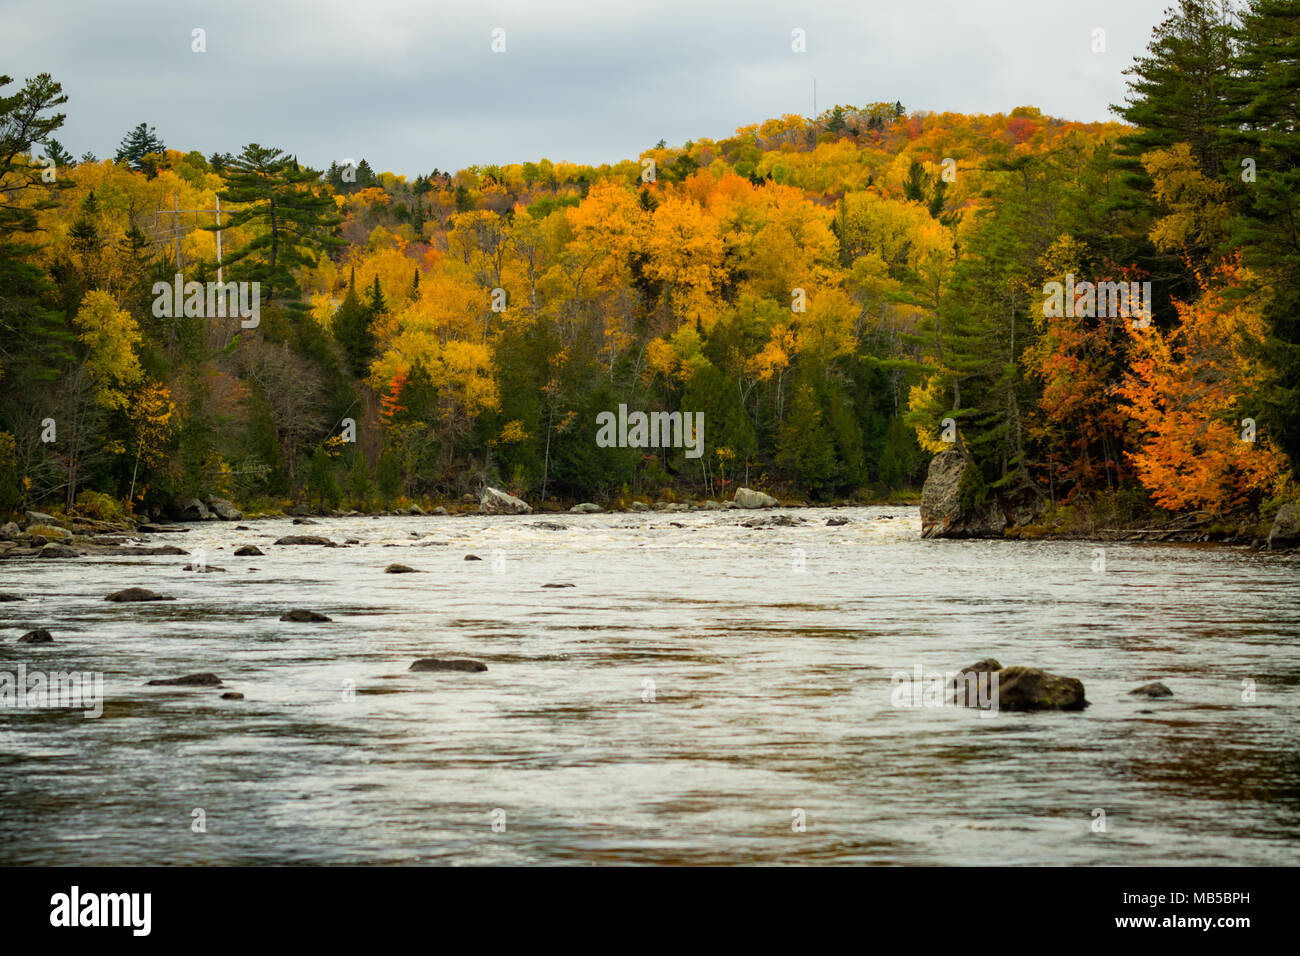 Autumn Colors Brighten up the Shore of the Penobscot River - Stock Image